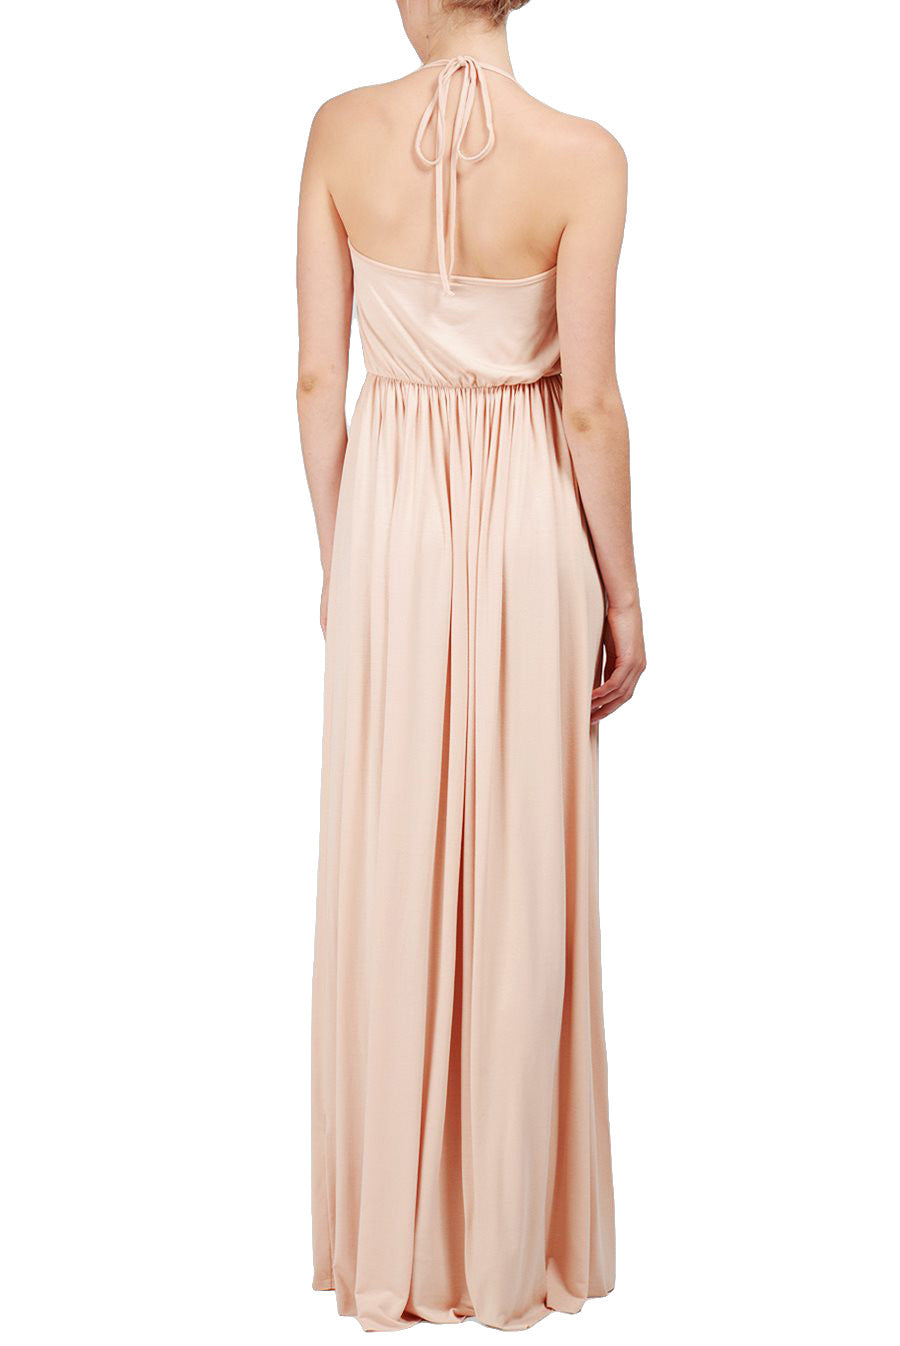 MARIN DRESS - BARE